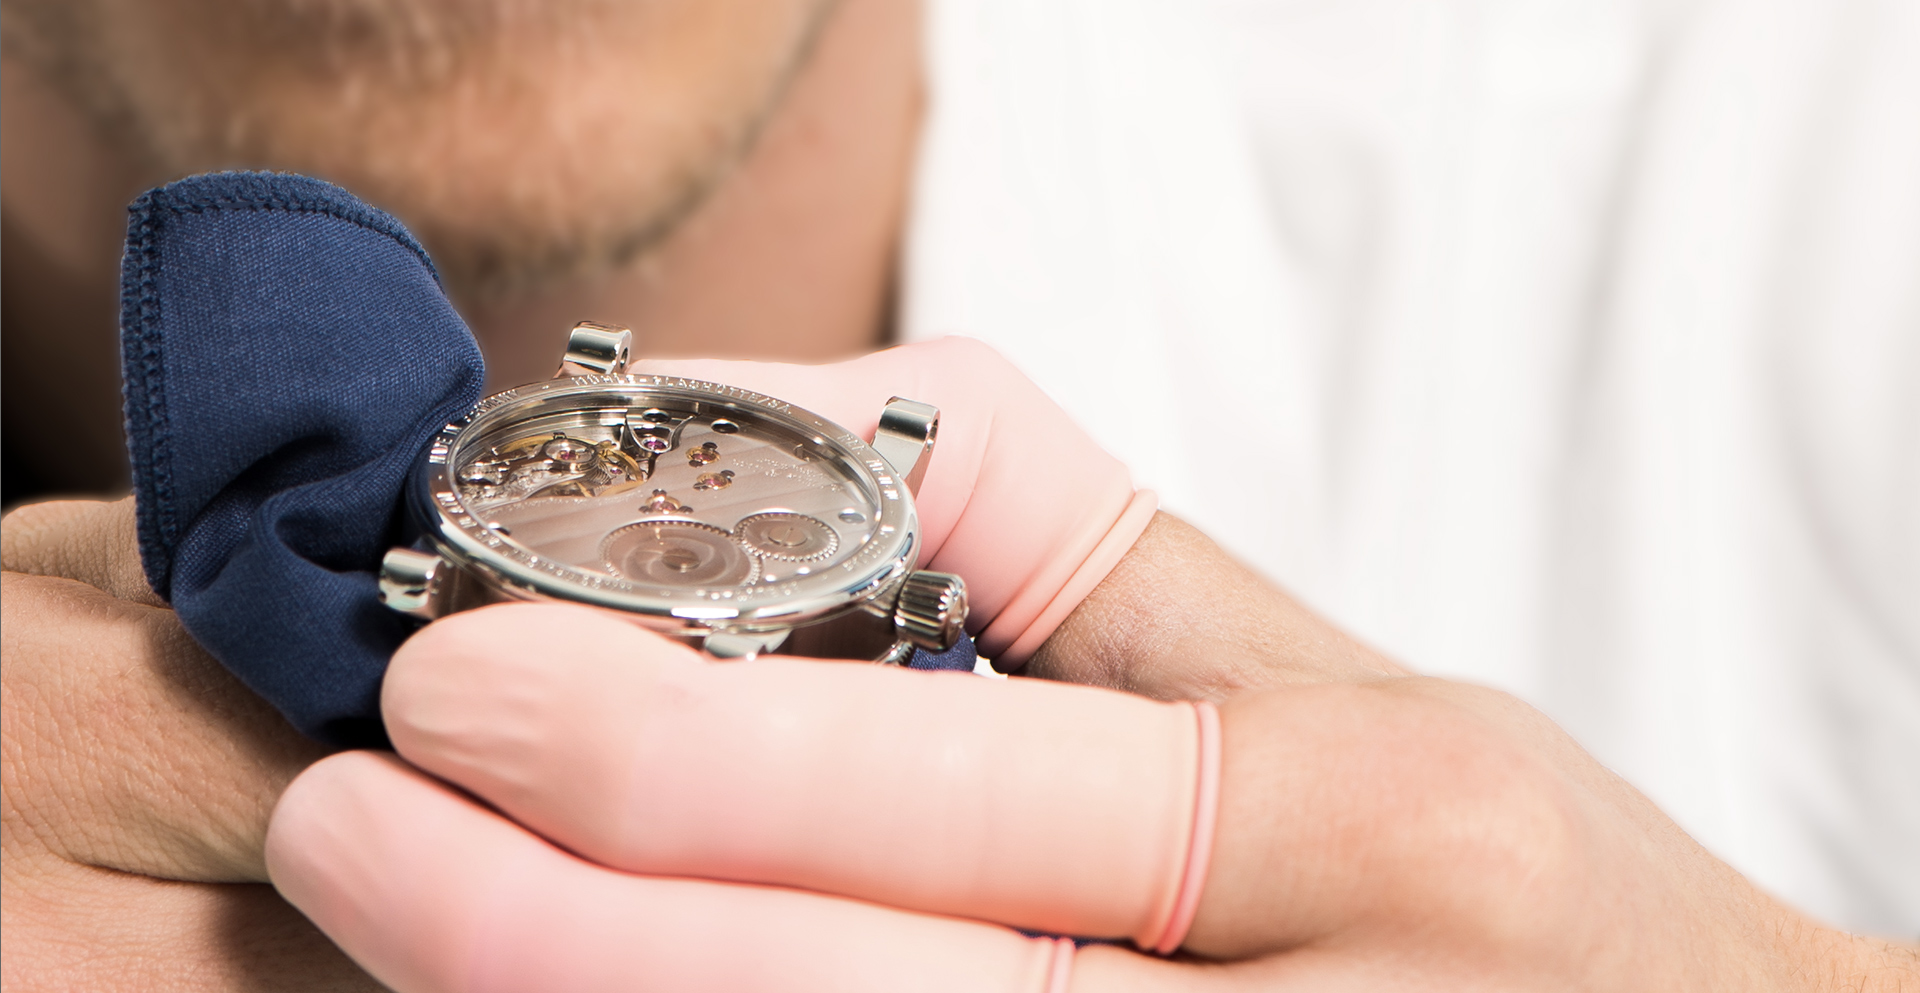 Mühle-Glashütte Watch, Cleaning a Watch, Watch Buying Guide